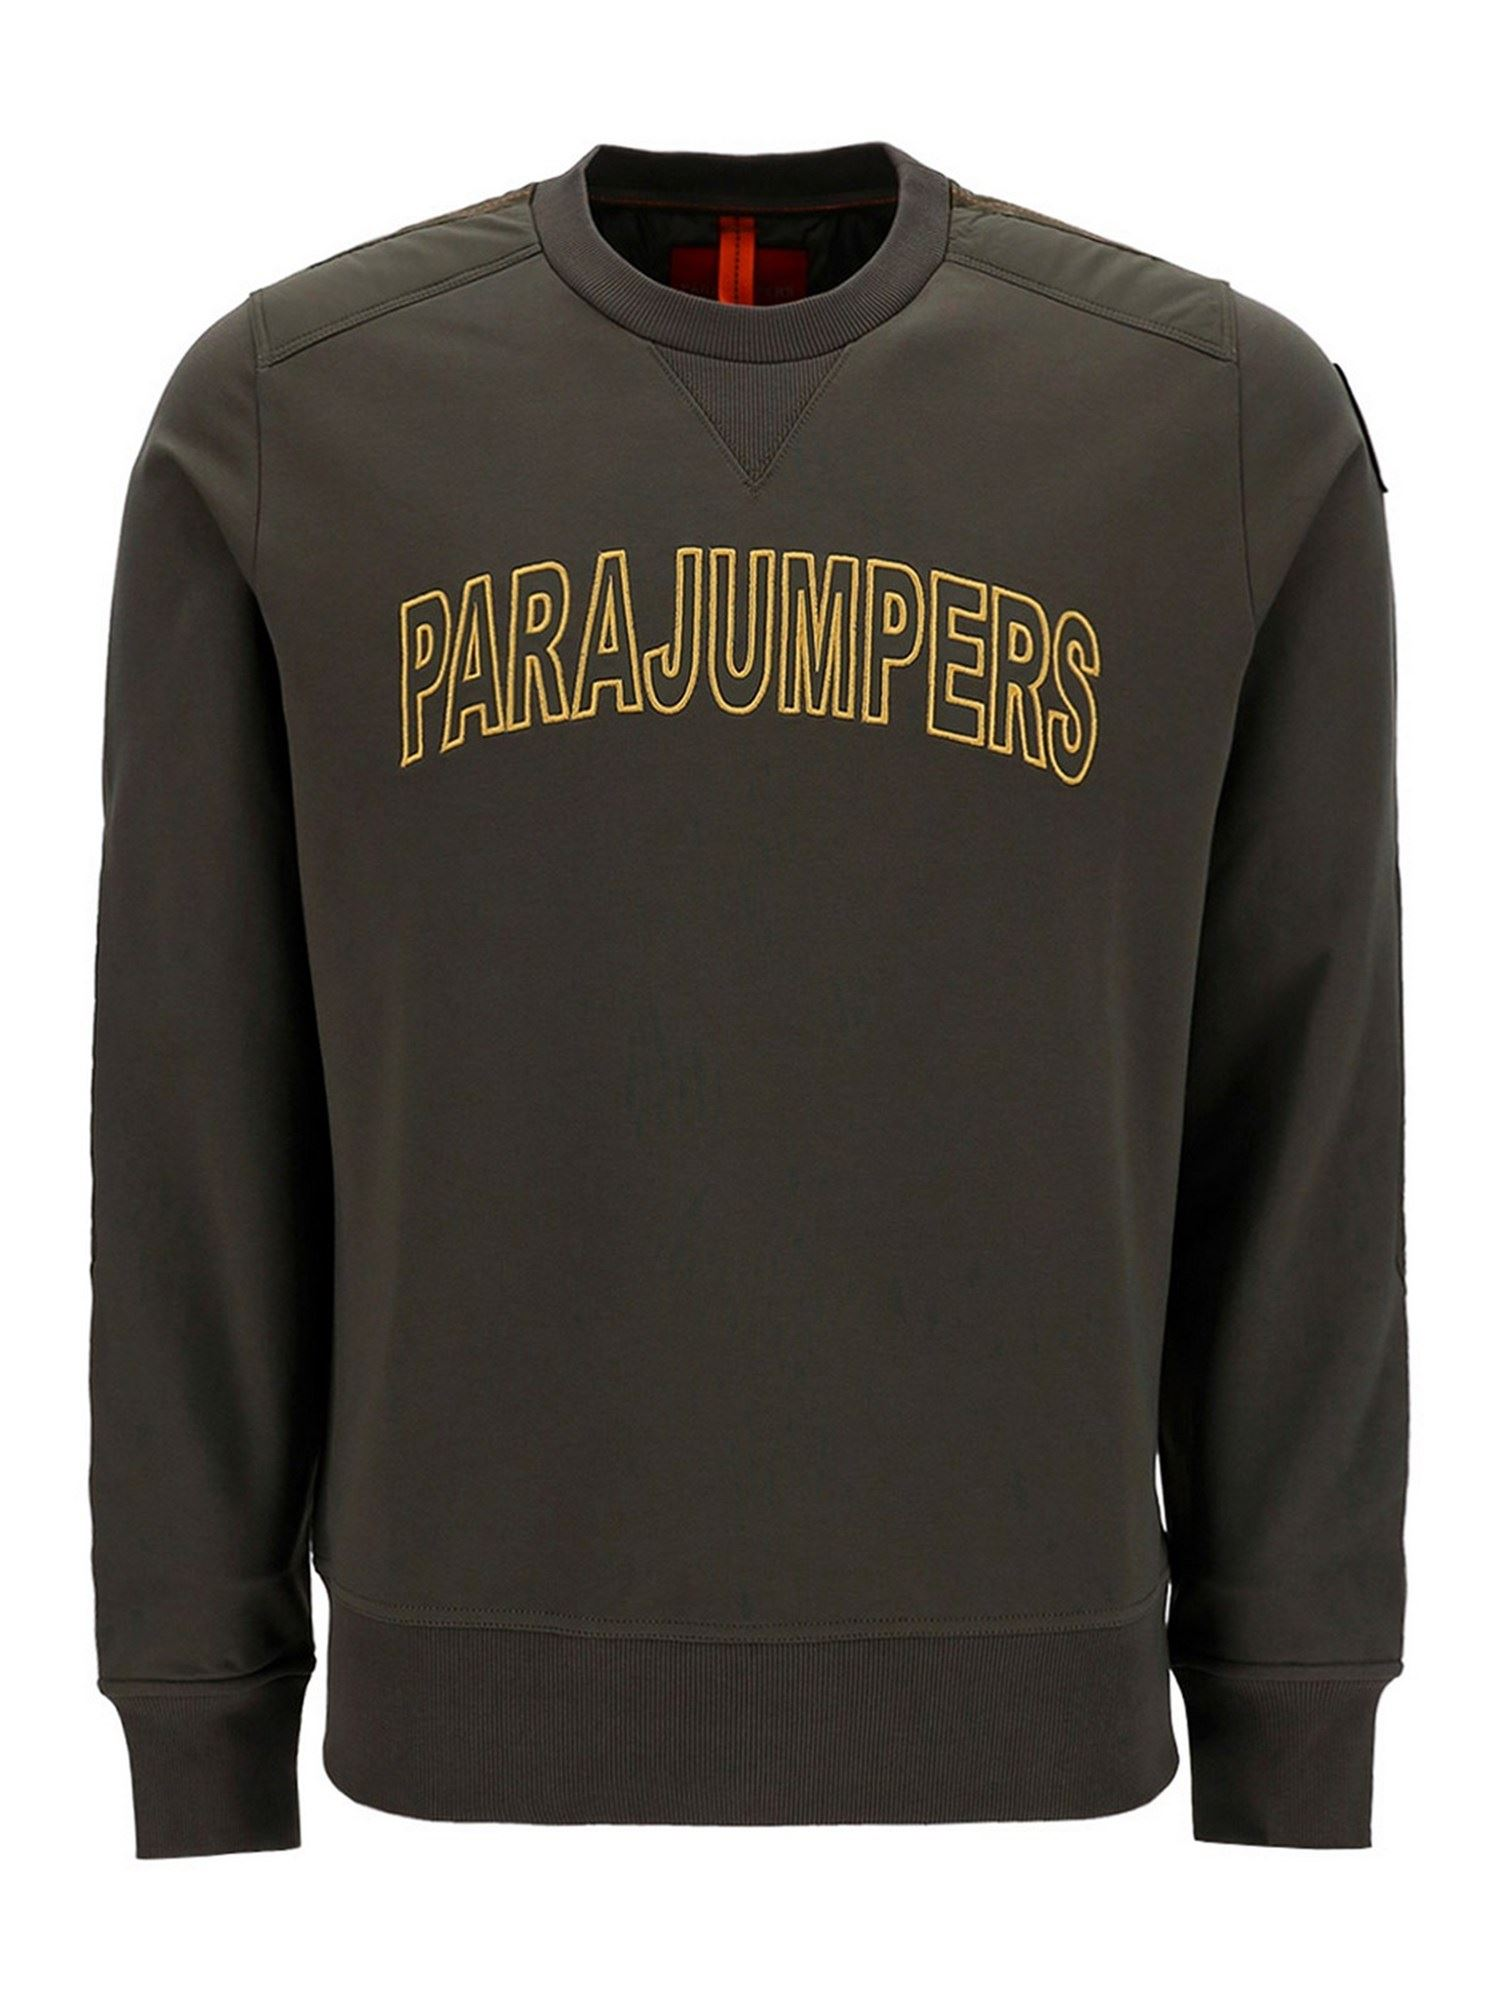 Parajumpers Cottons LOGO EMBROIDERY SWEATSHIRT IN GREEN